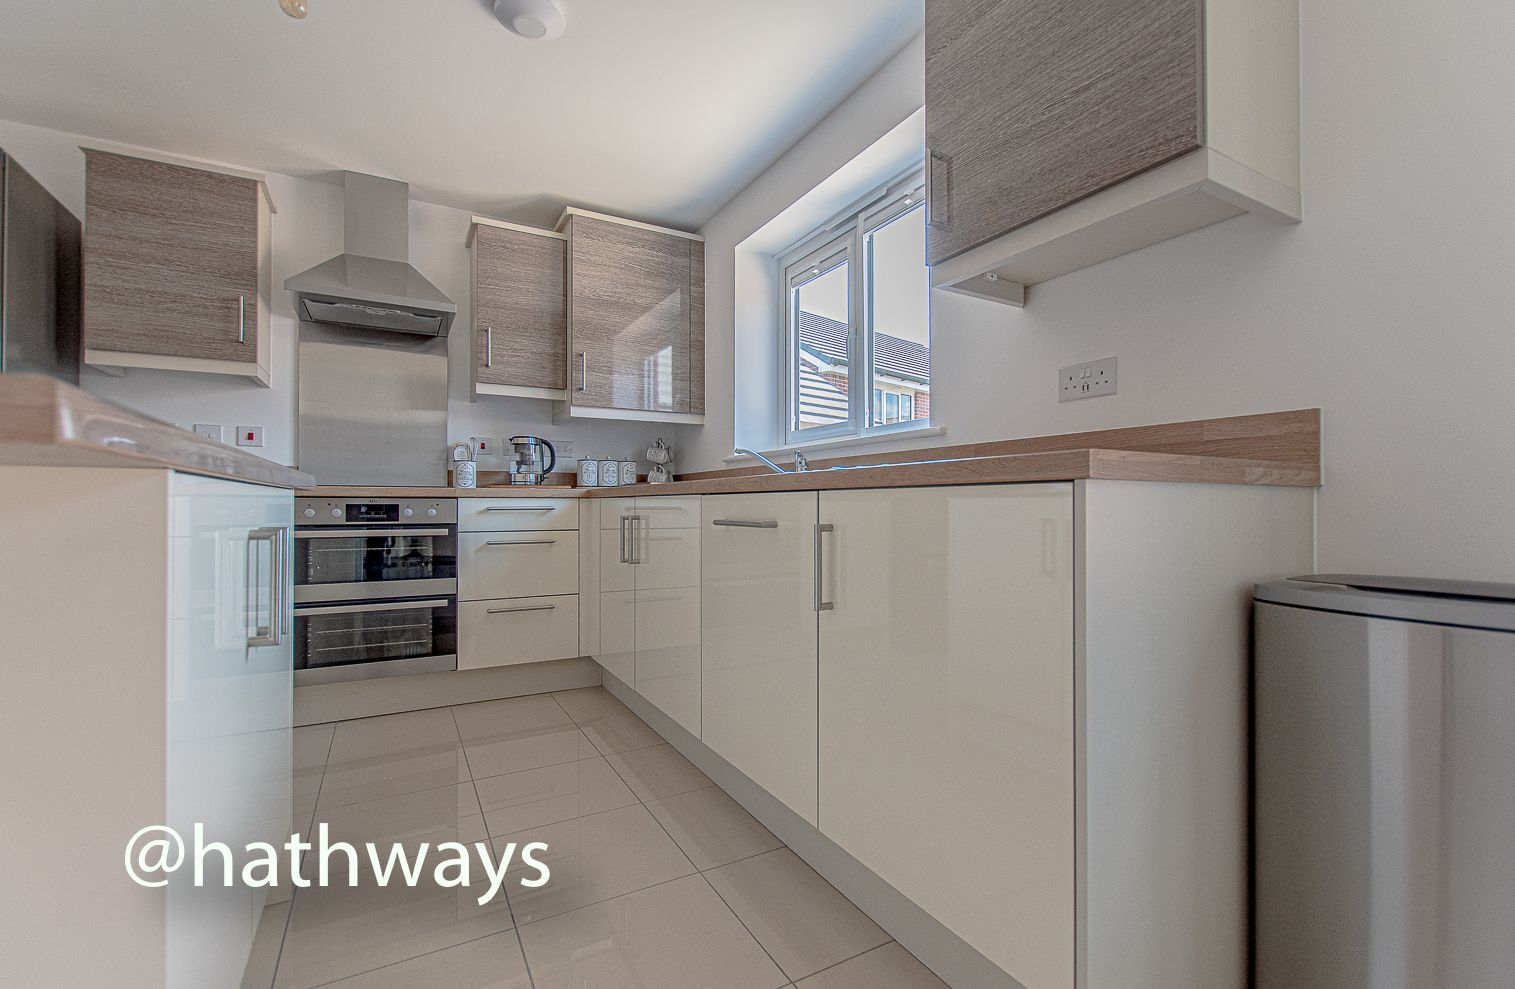 4 bed house for sale in Cwrt Celyn  - Property Image 12